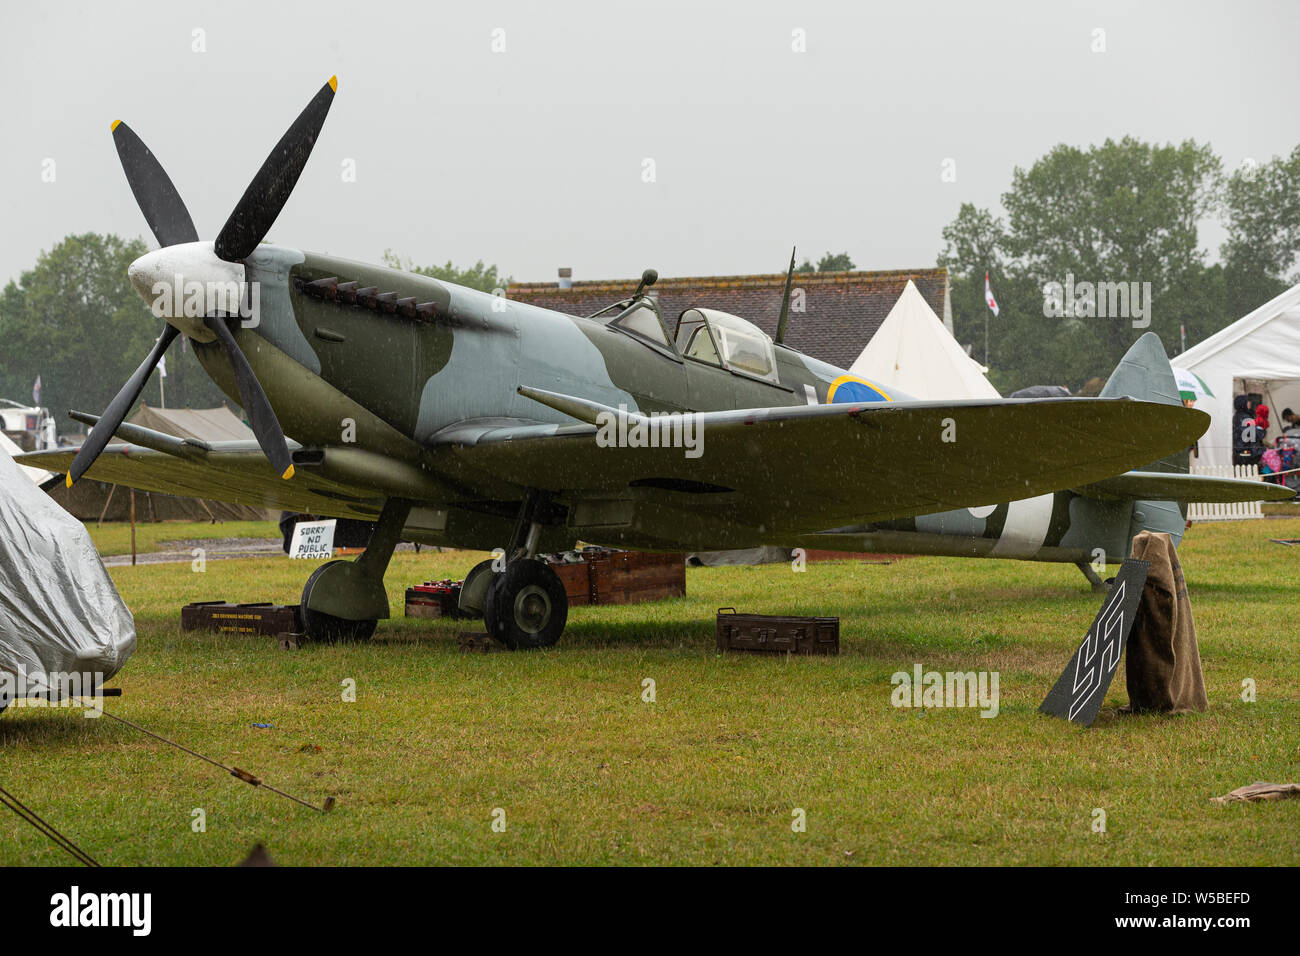 Wwii Propeller Stock Photos & Wwii Propeller Stock Images